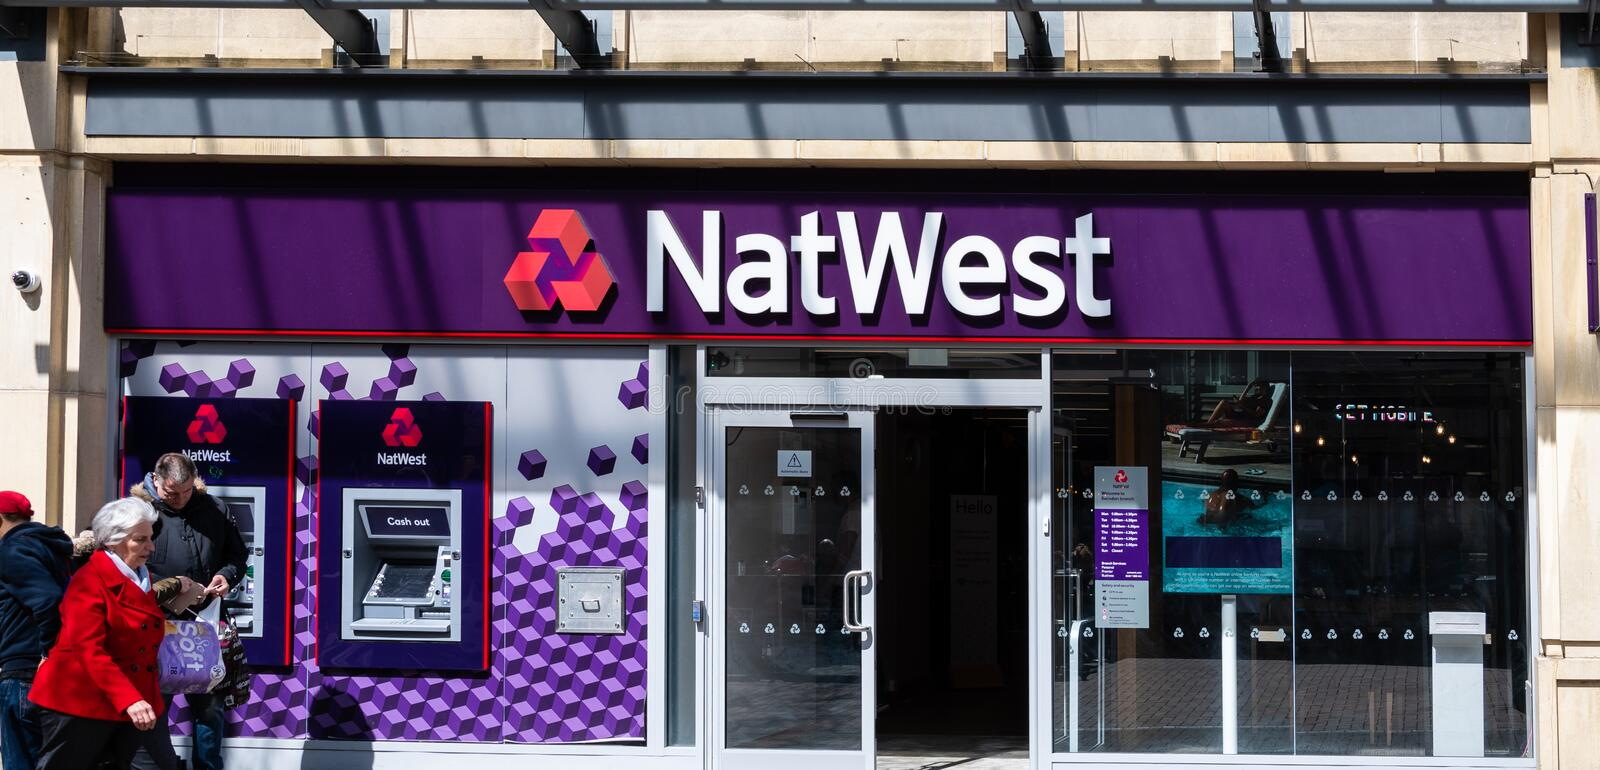 NatWest bank Frontage royalty free stock images